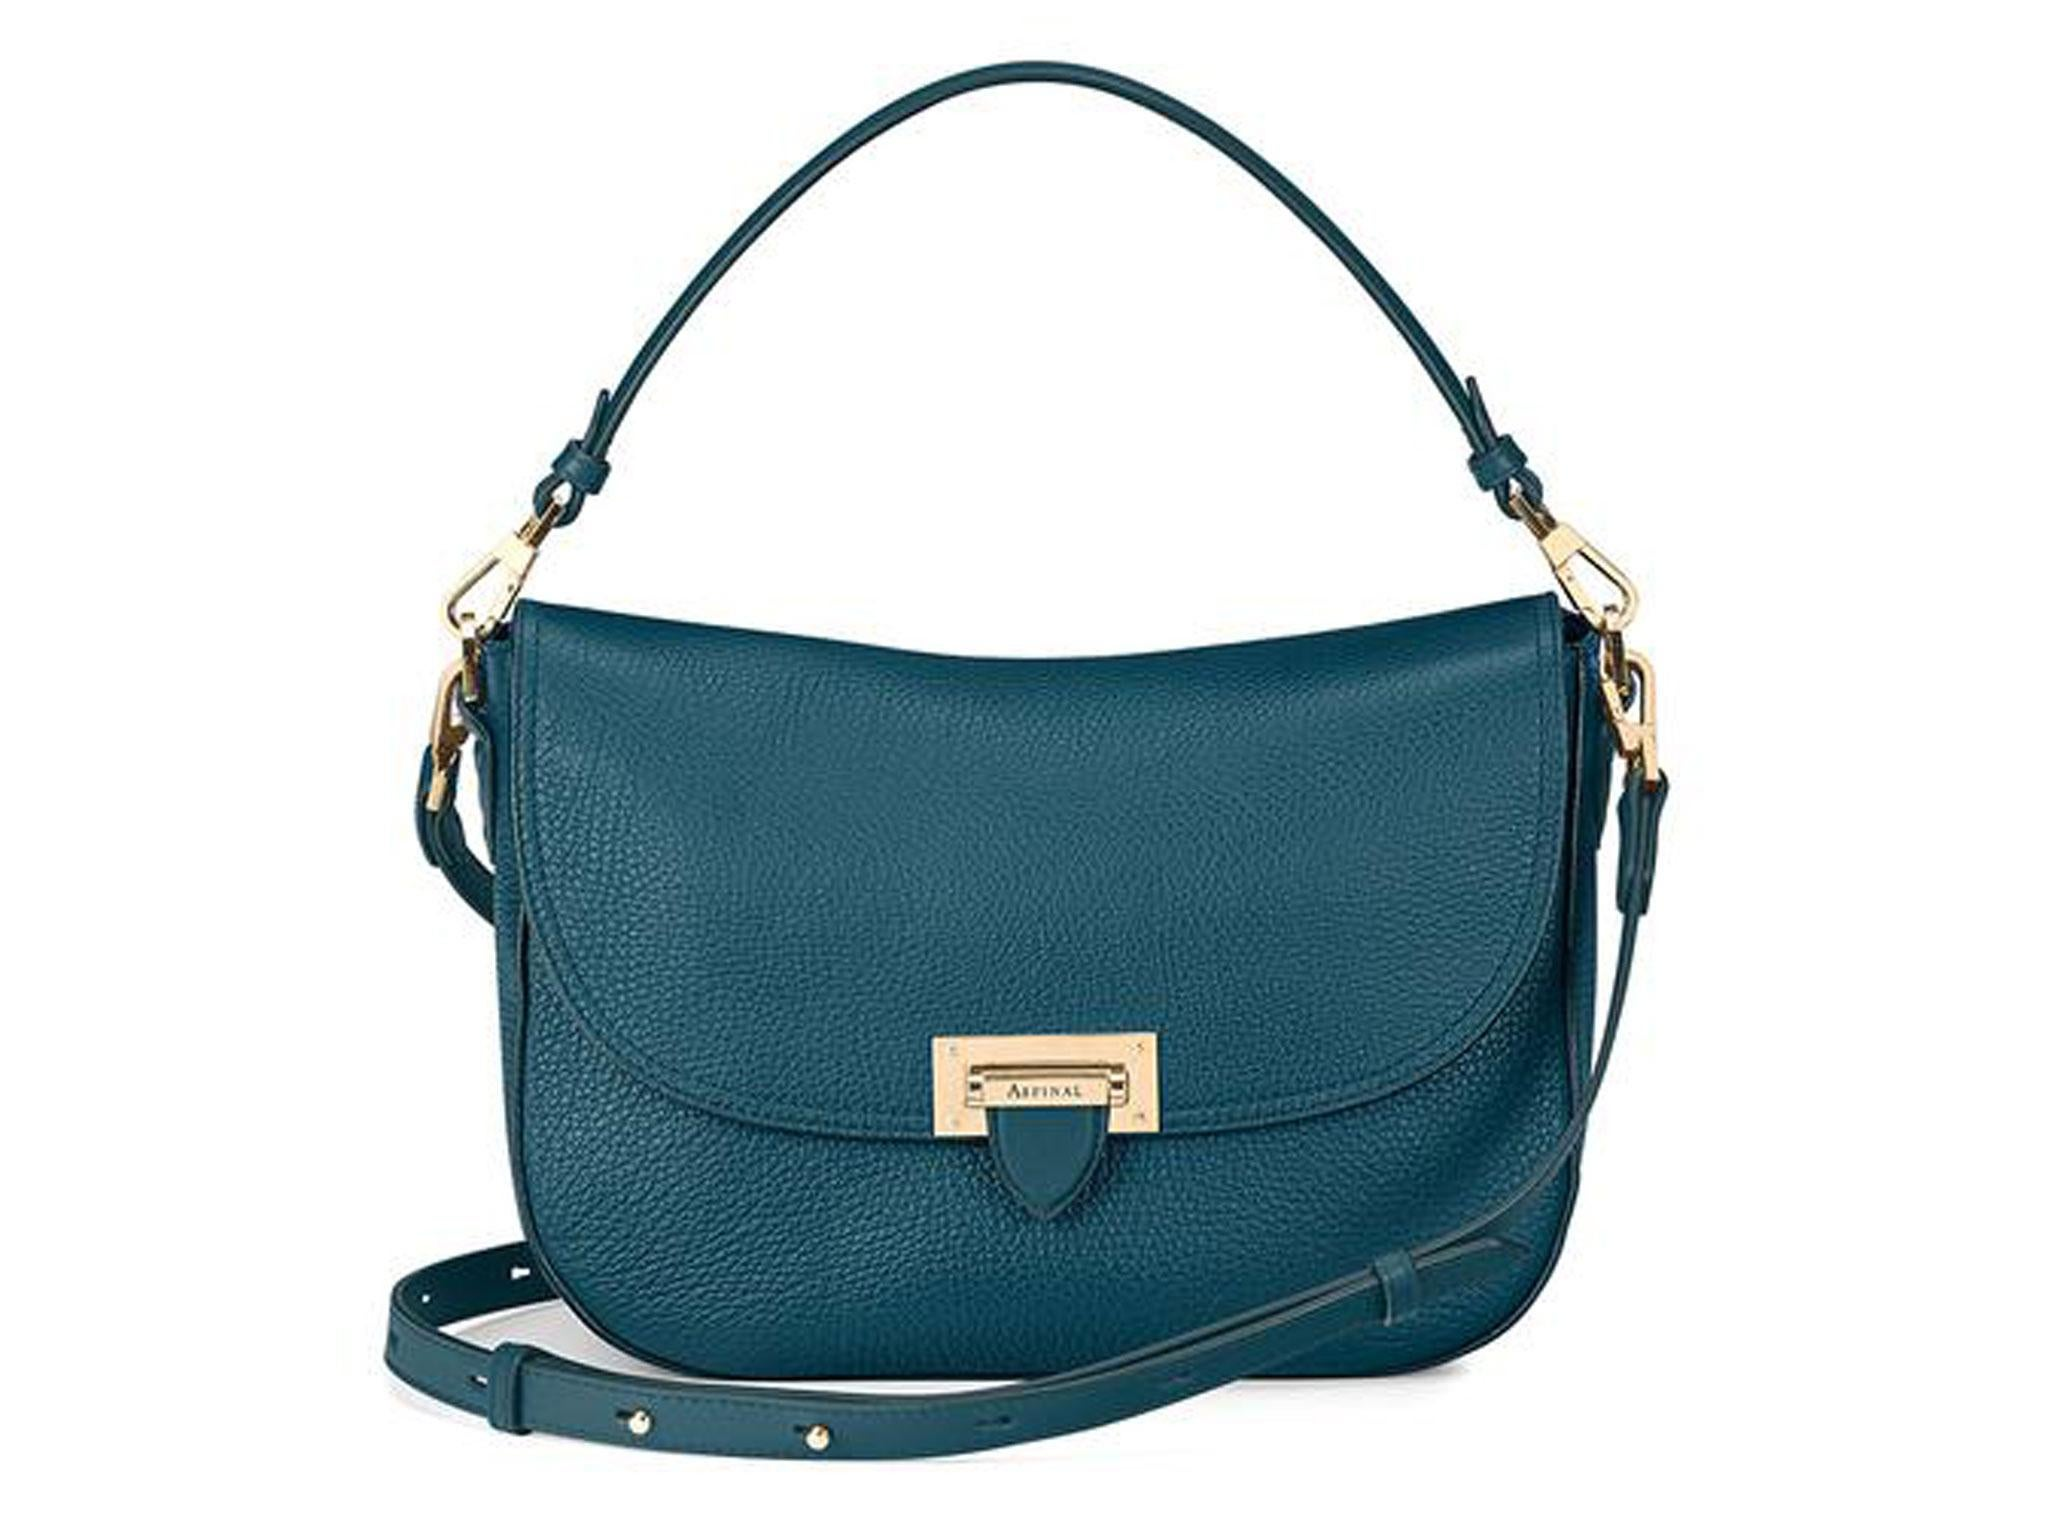 cff77bad026 Aspinal The Letterbox Slouchy Saddle Bag  £495, Aspinal of London